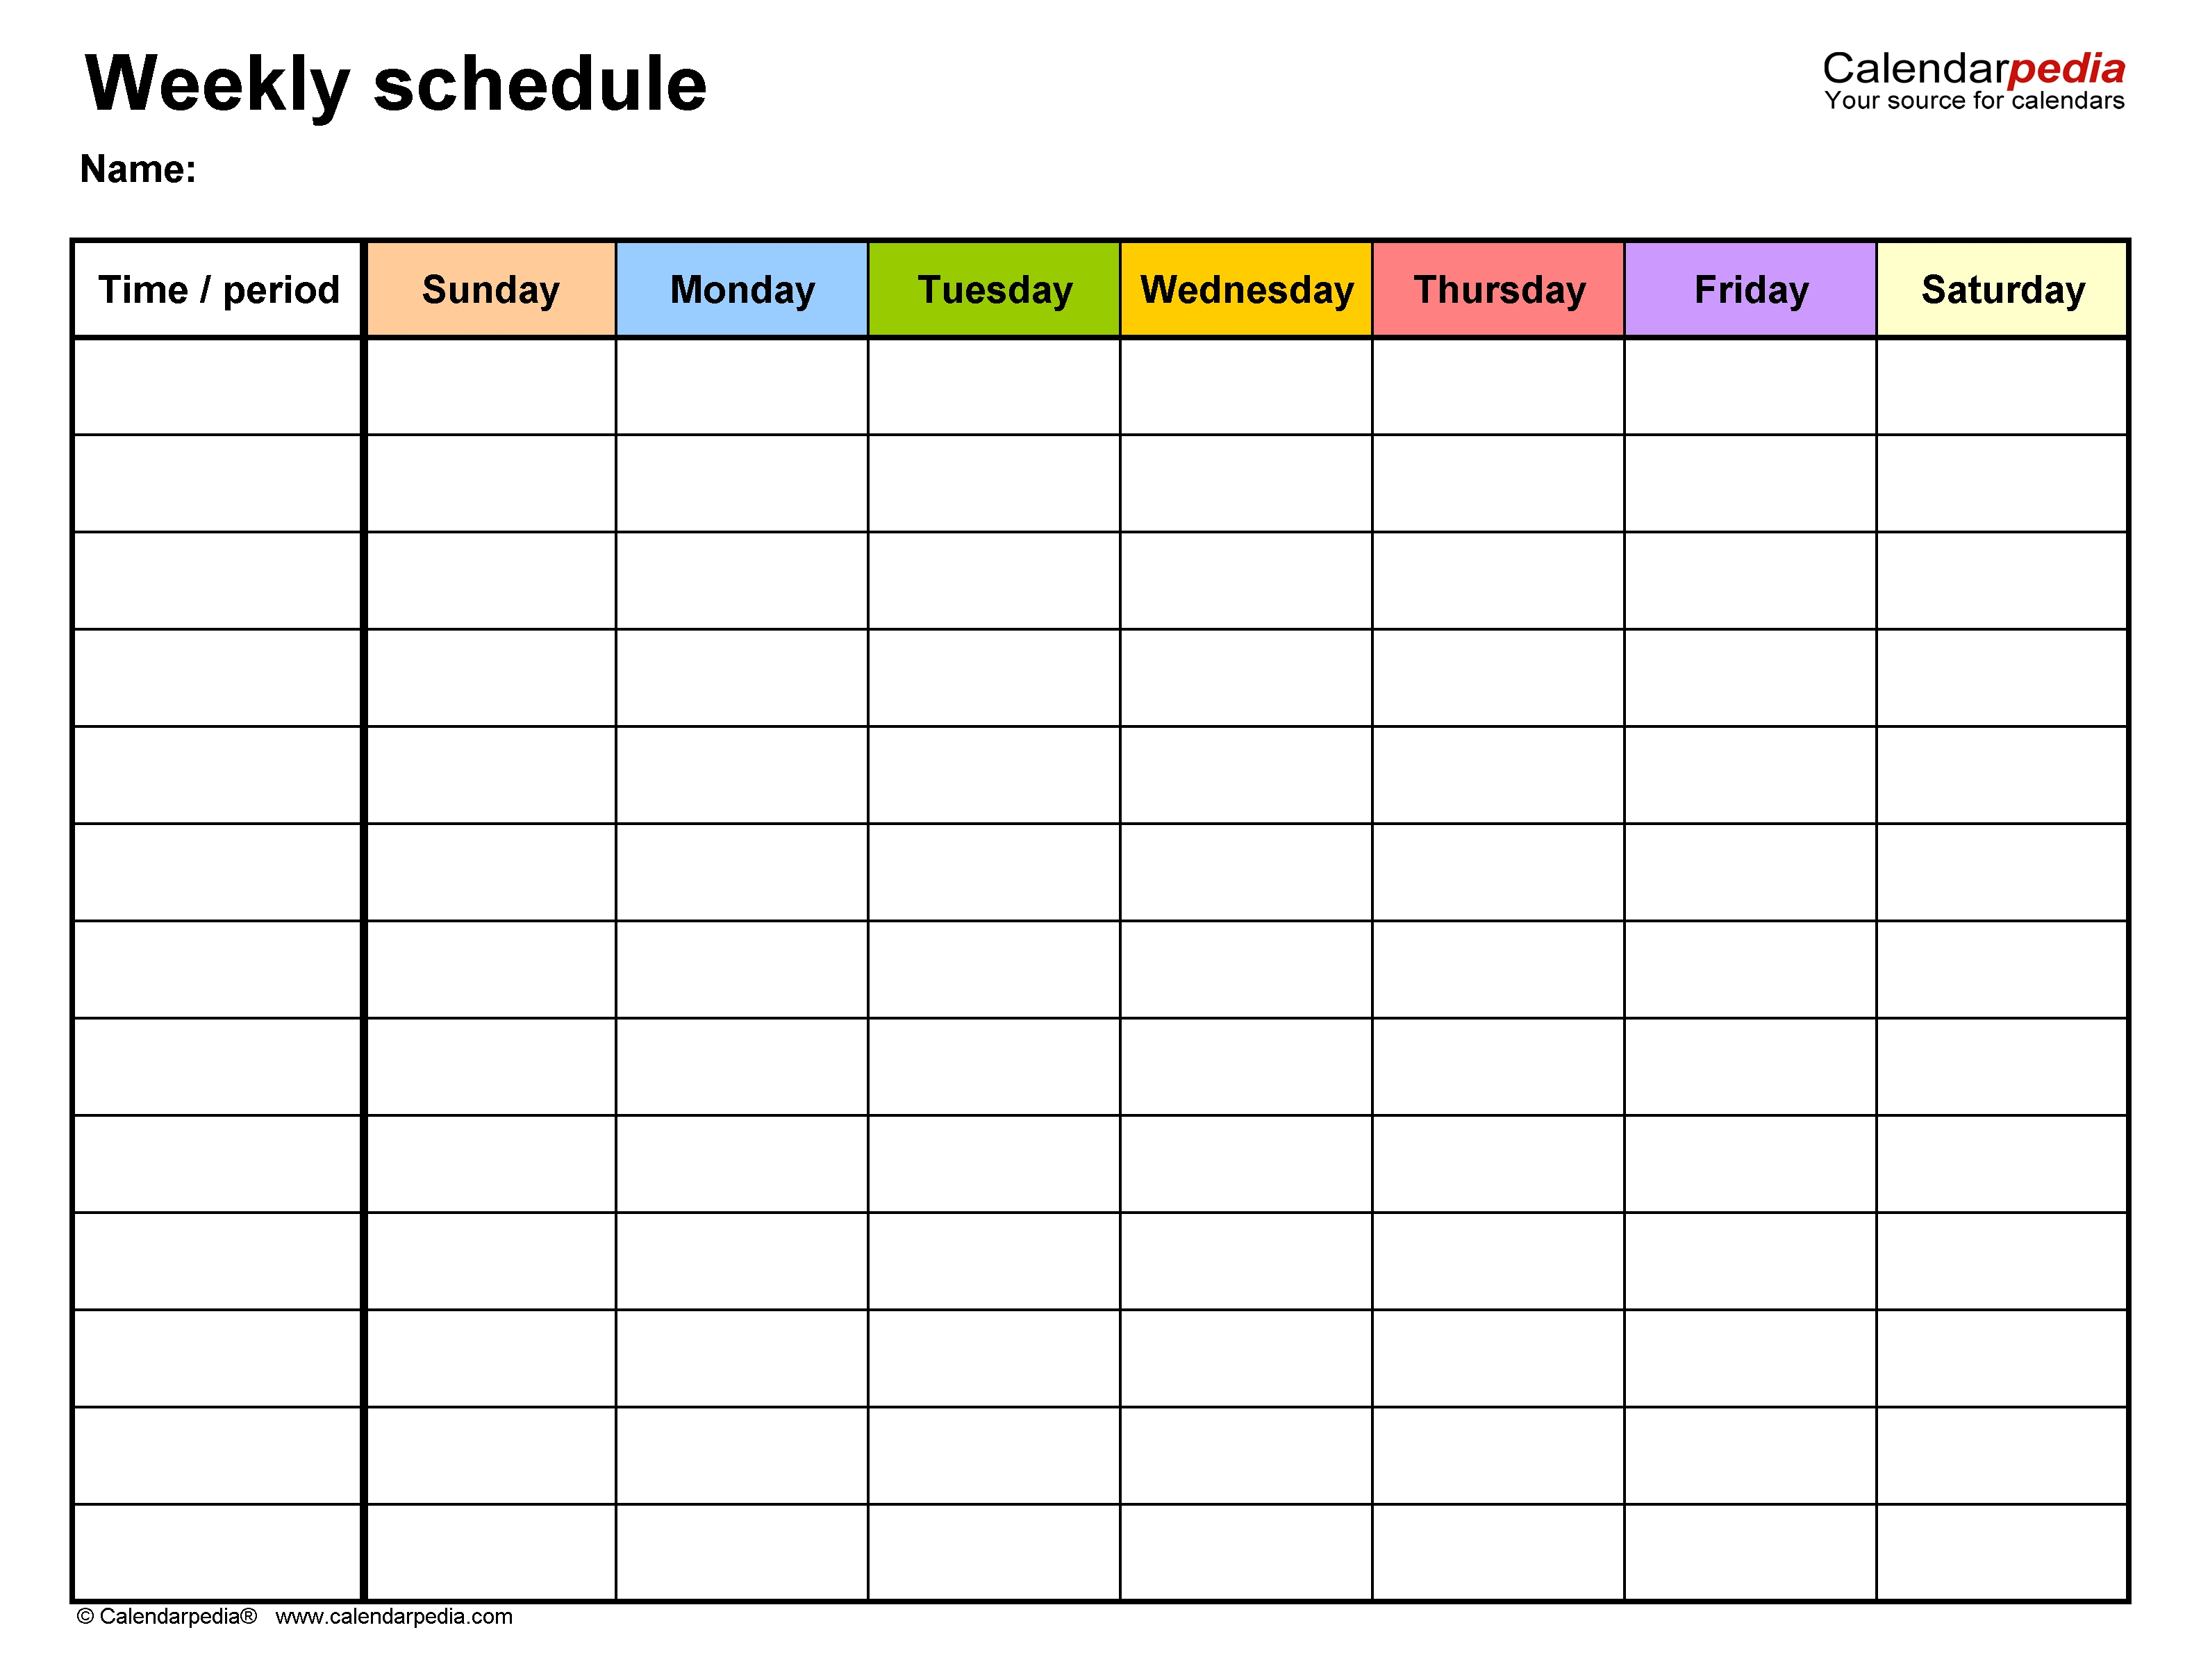 Free Weekly Schedule Templates For Word - 18 Templates 7 Day Week Calendar Template